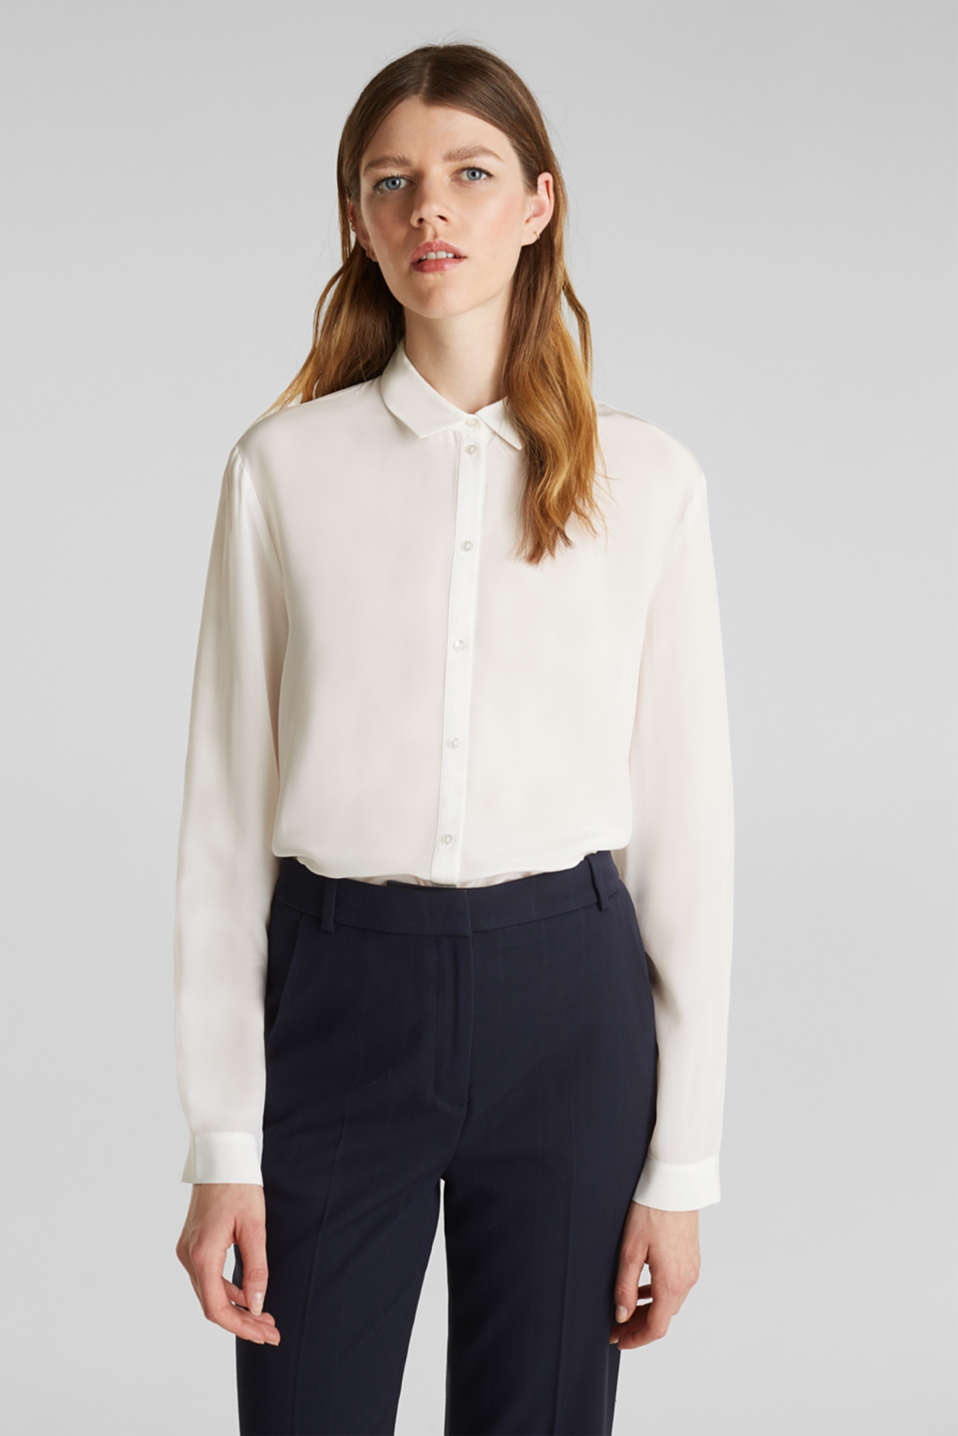 Esprit - Made of blended silk: shirt blouse in a basic look